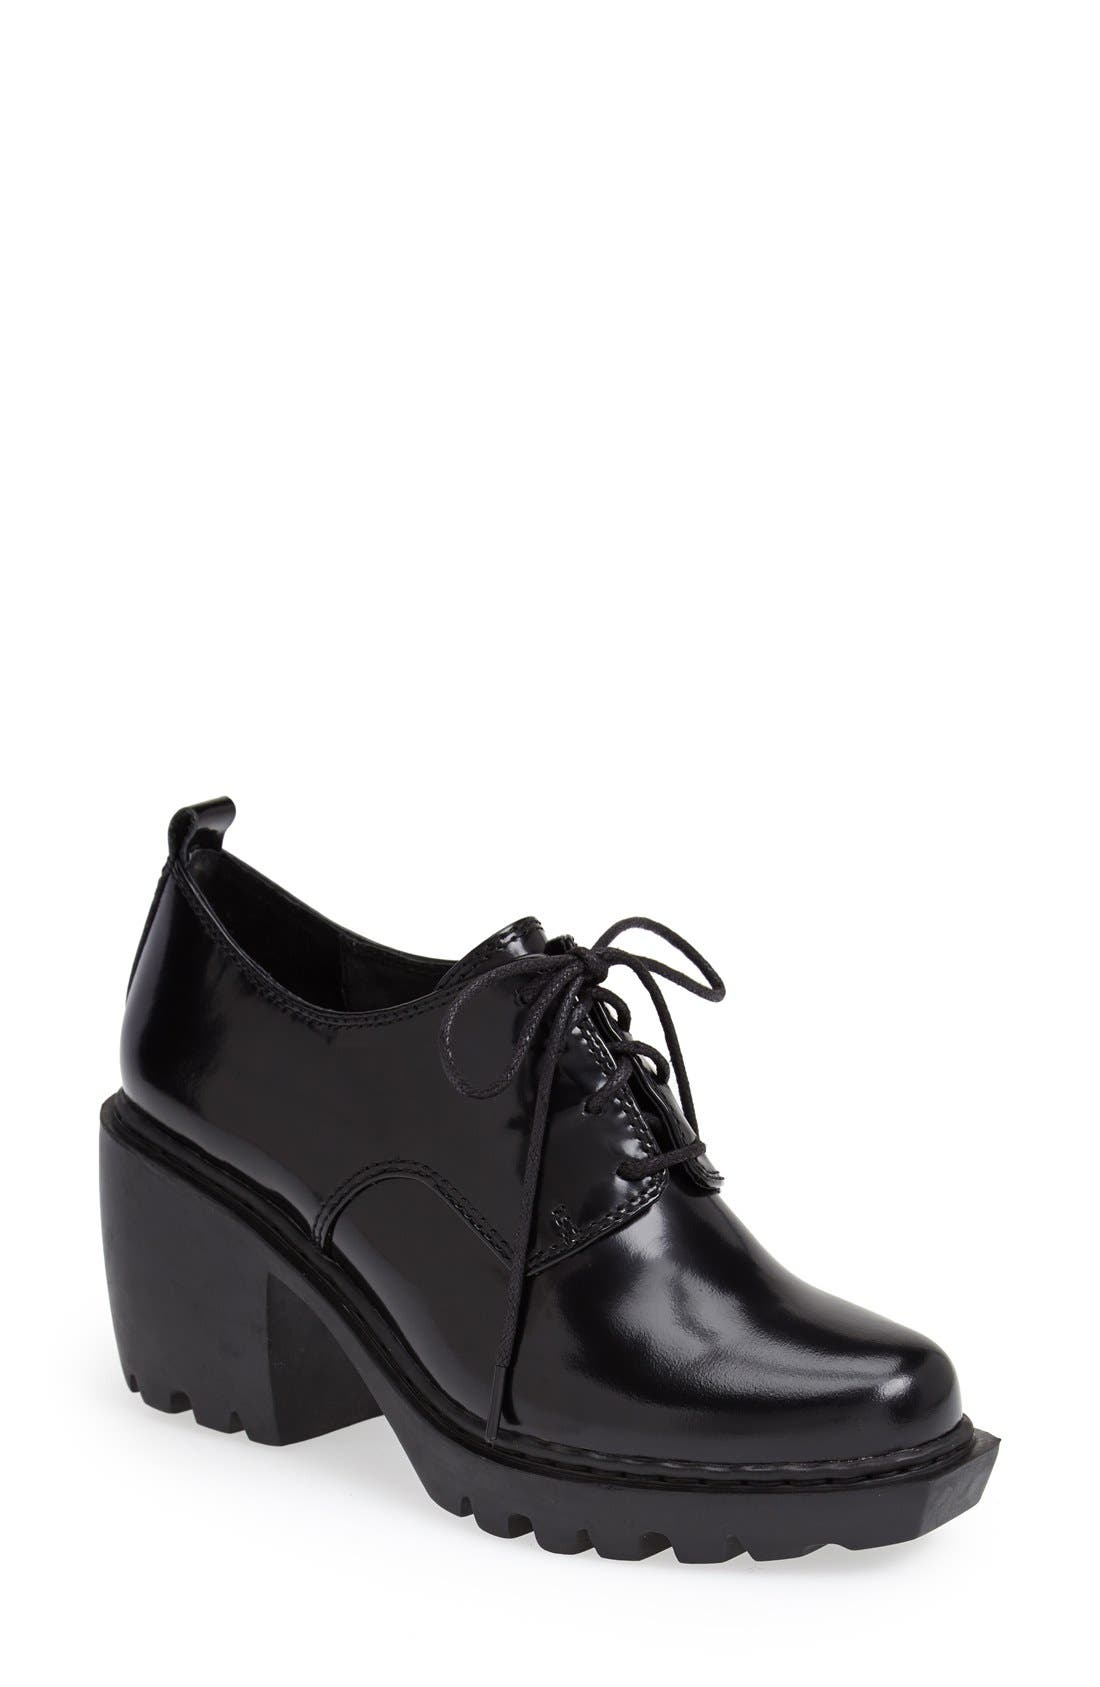 Main Image - Opening Ceremony 'Grunge' Oxford Bootie